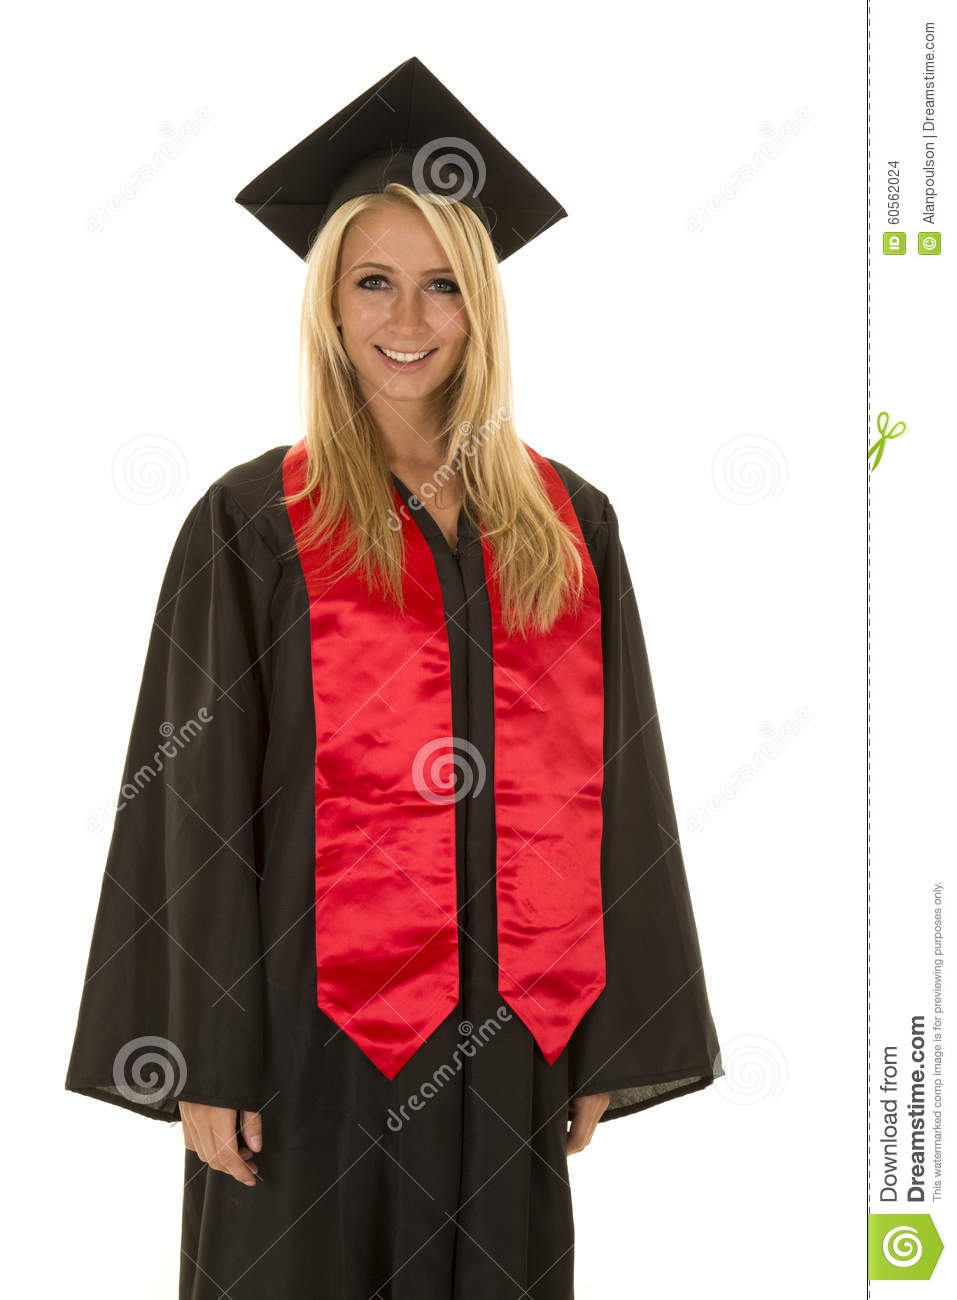 Woman In Black Graduation Gown Stand Smile Stock Photo - Image of ...